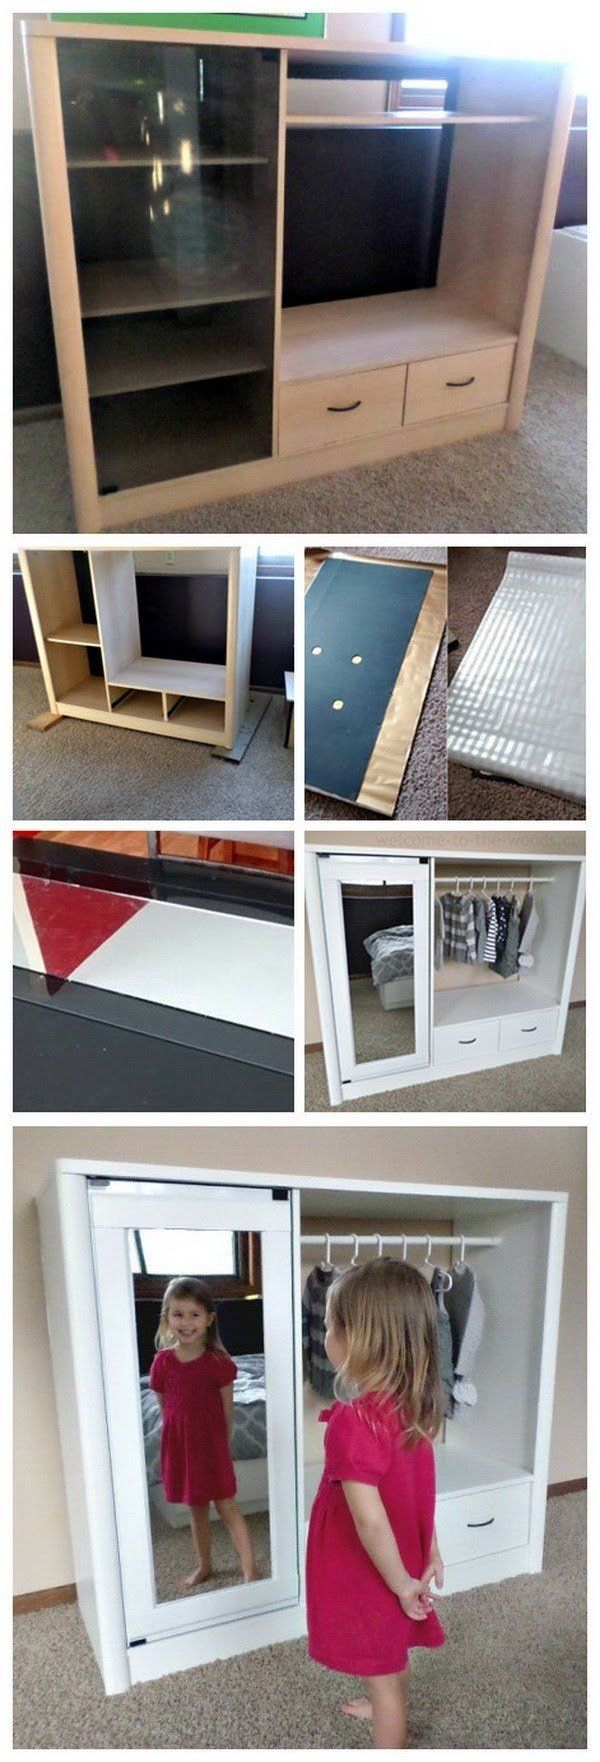 repurposed furniture for kids. Entertainment Center Turned Kids Closet Armoire: Recreate An Old Tube TV Into A Useful Storage Solution For Your Daughter\u0027s Bedroom. Repurposed Furniture